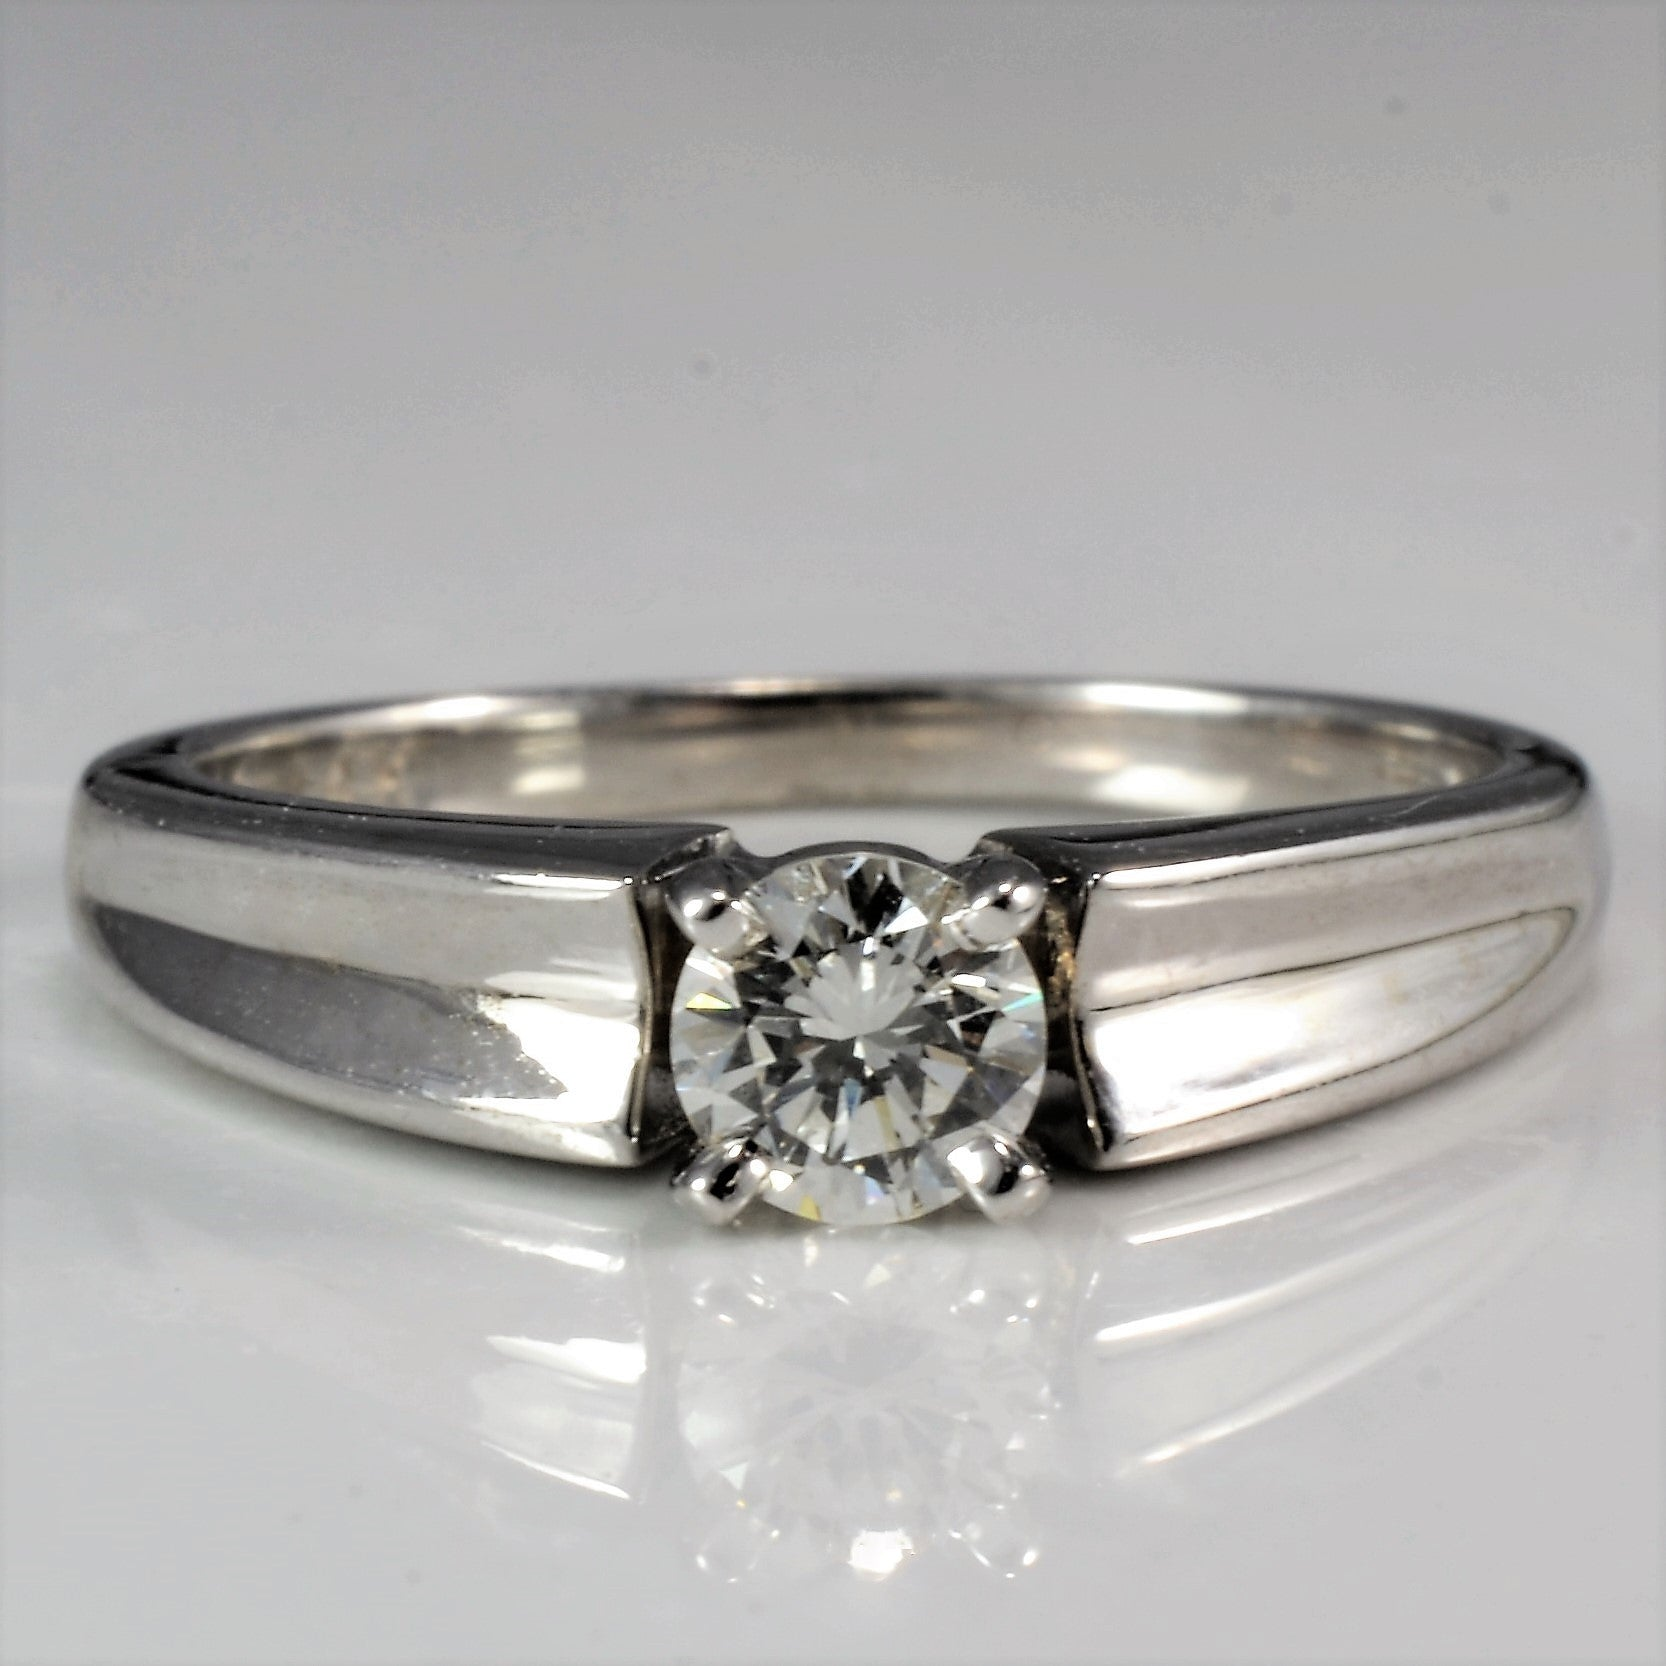 Concave Band Solitaire Engagement Ring | 0.21 ct, SZ 4.5 |